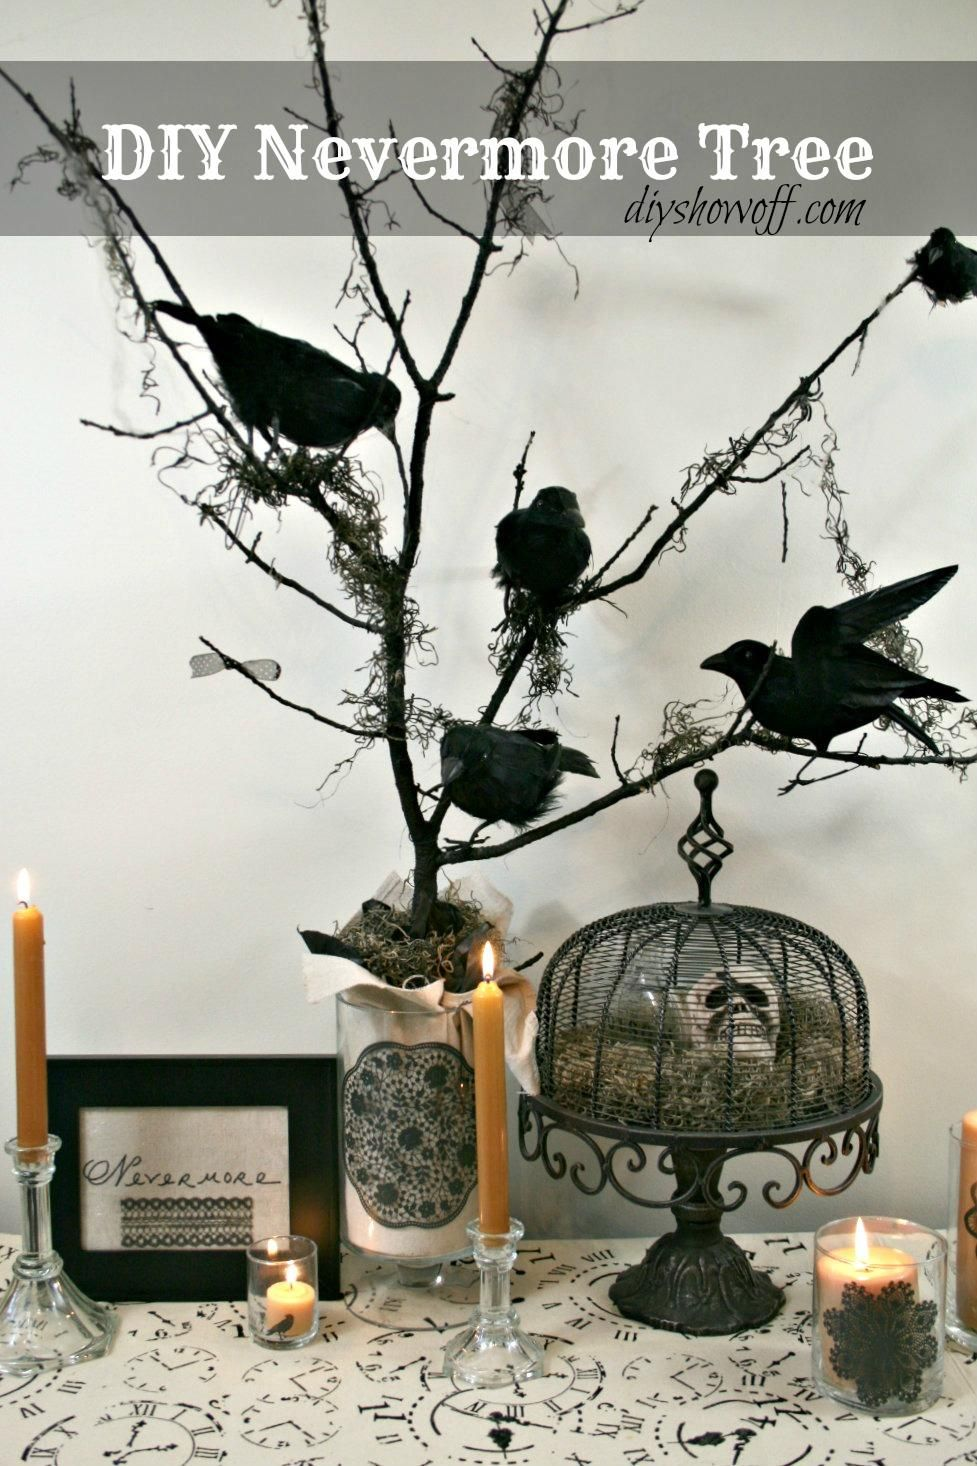 Halloween decorations  DIY Halloween Nevermore Tree decor - Halloween Decoration Ideas Pinterest